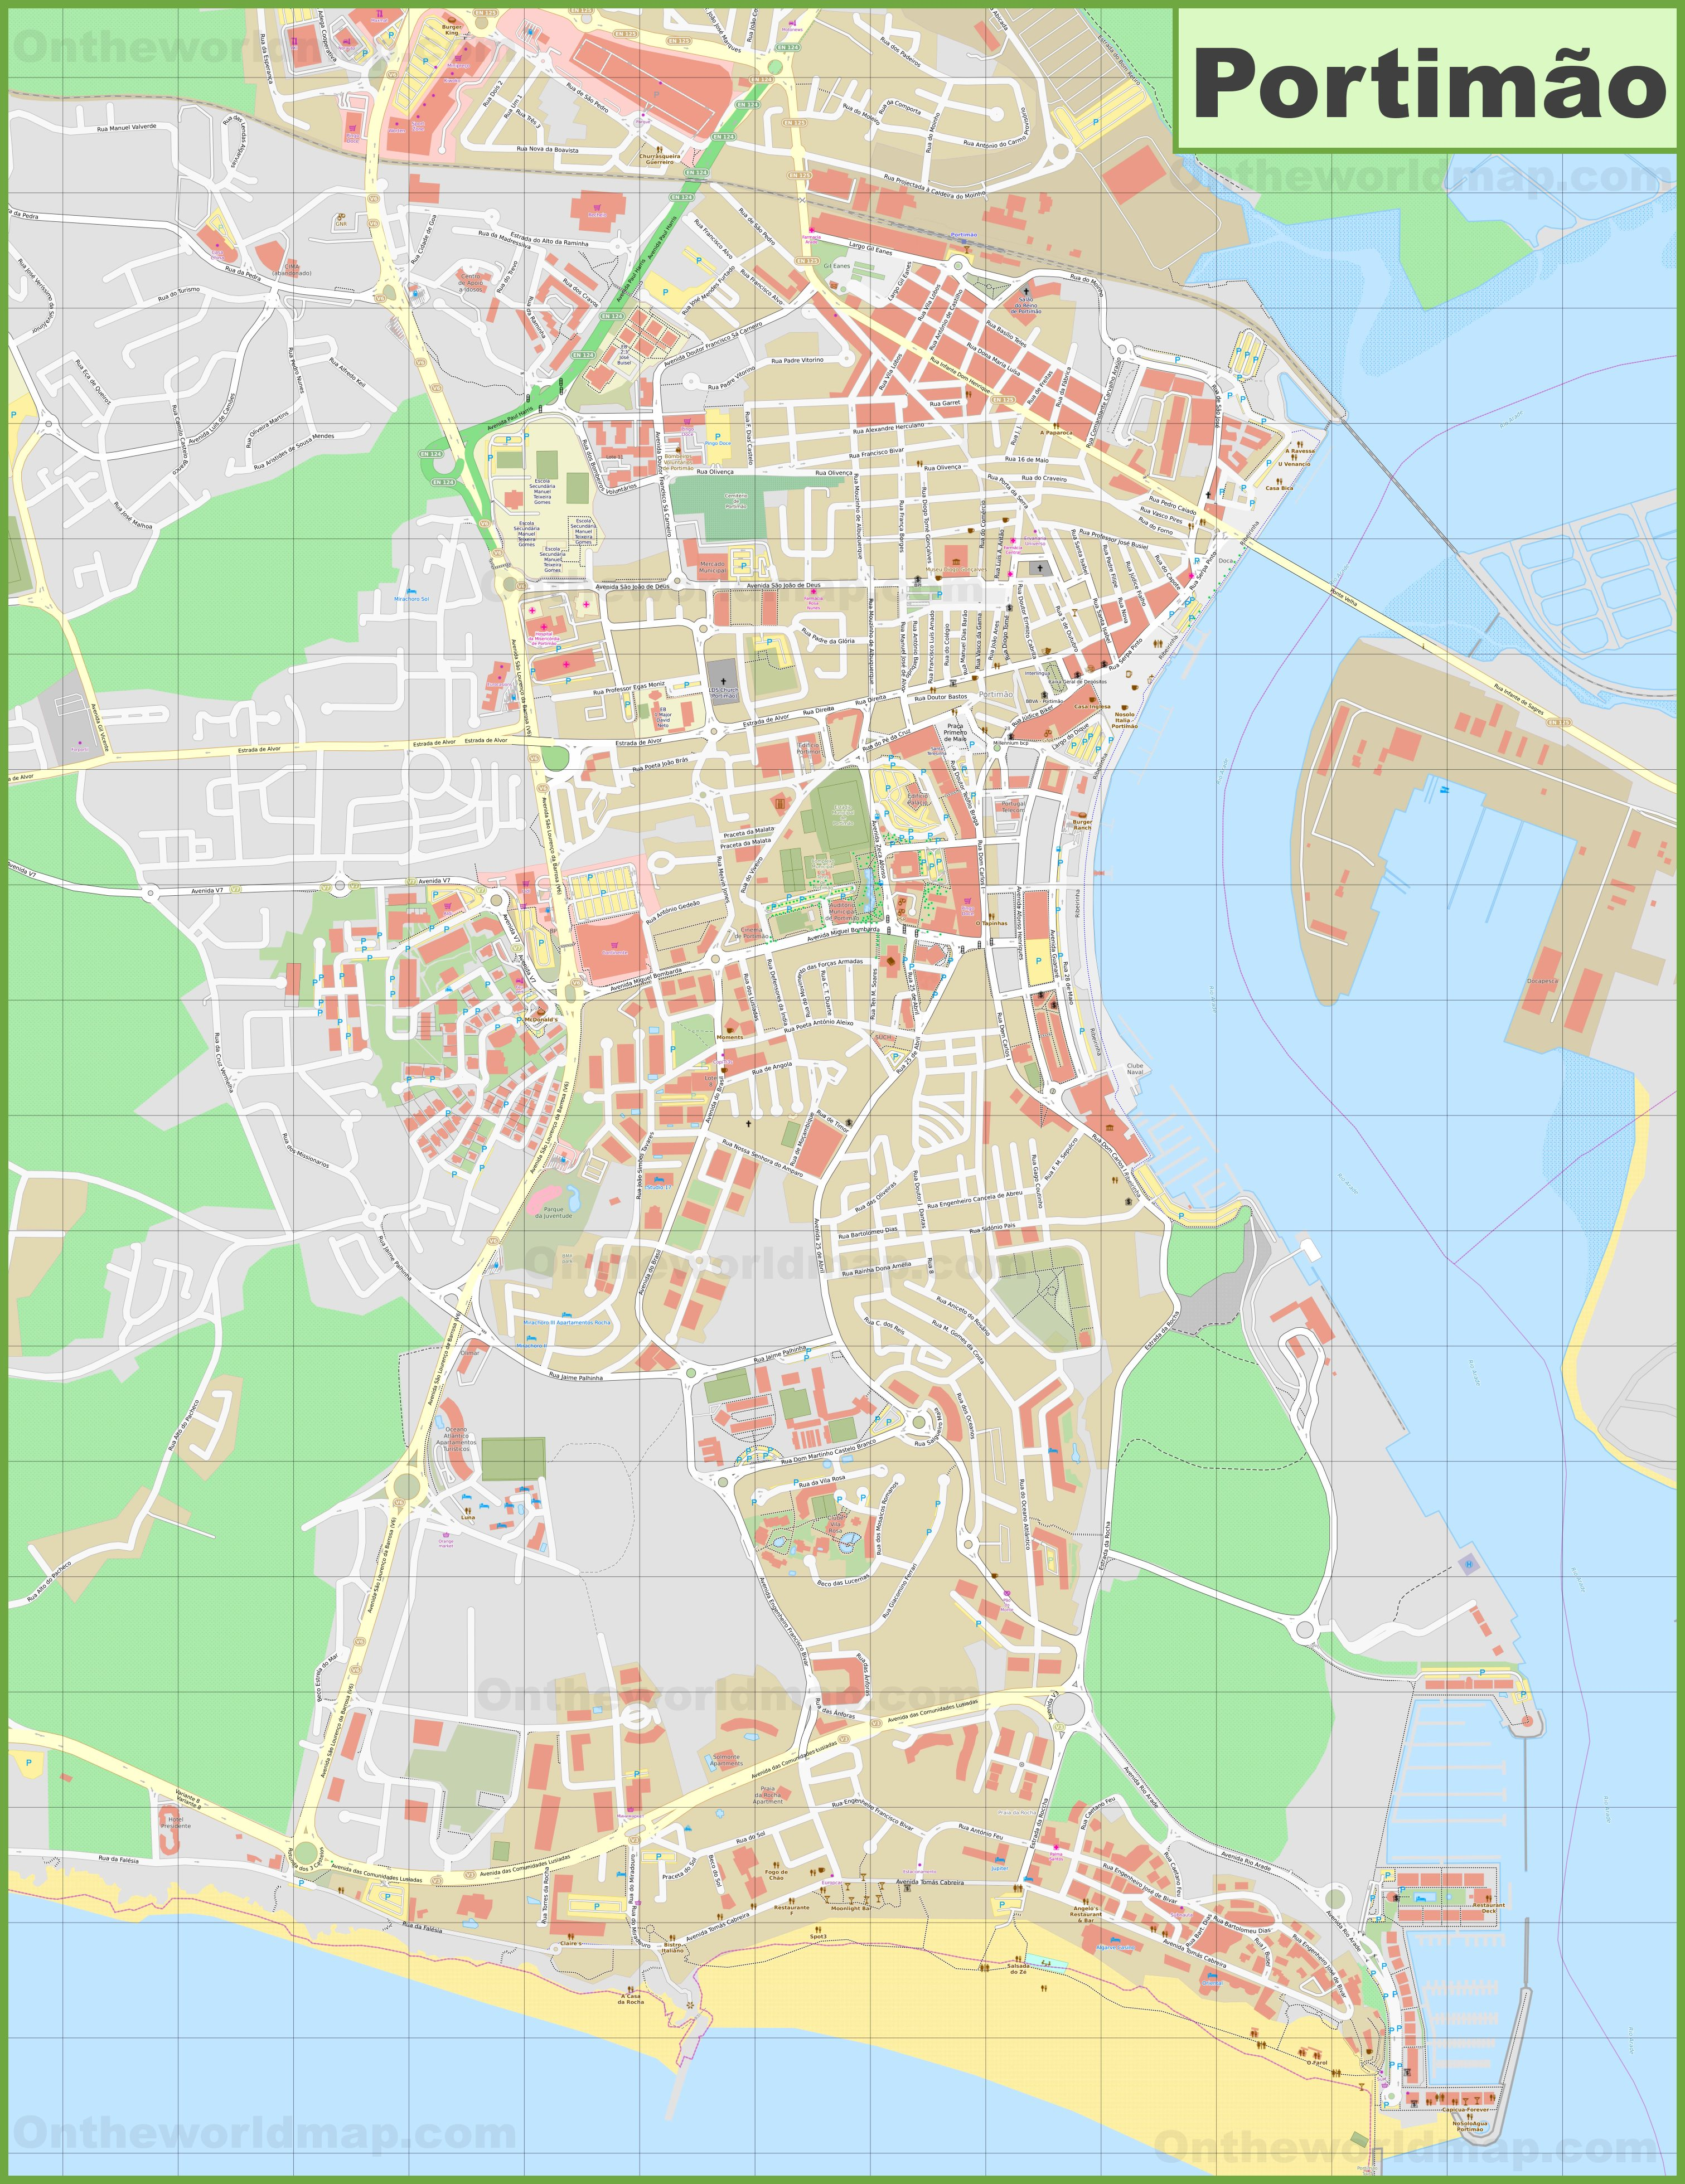 Detailed Map Of Portimao